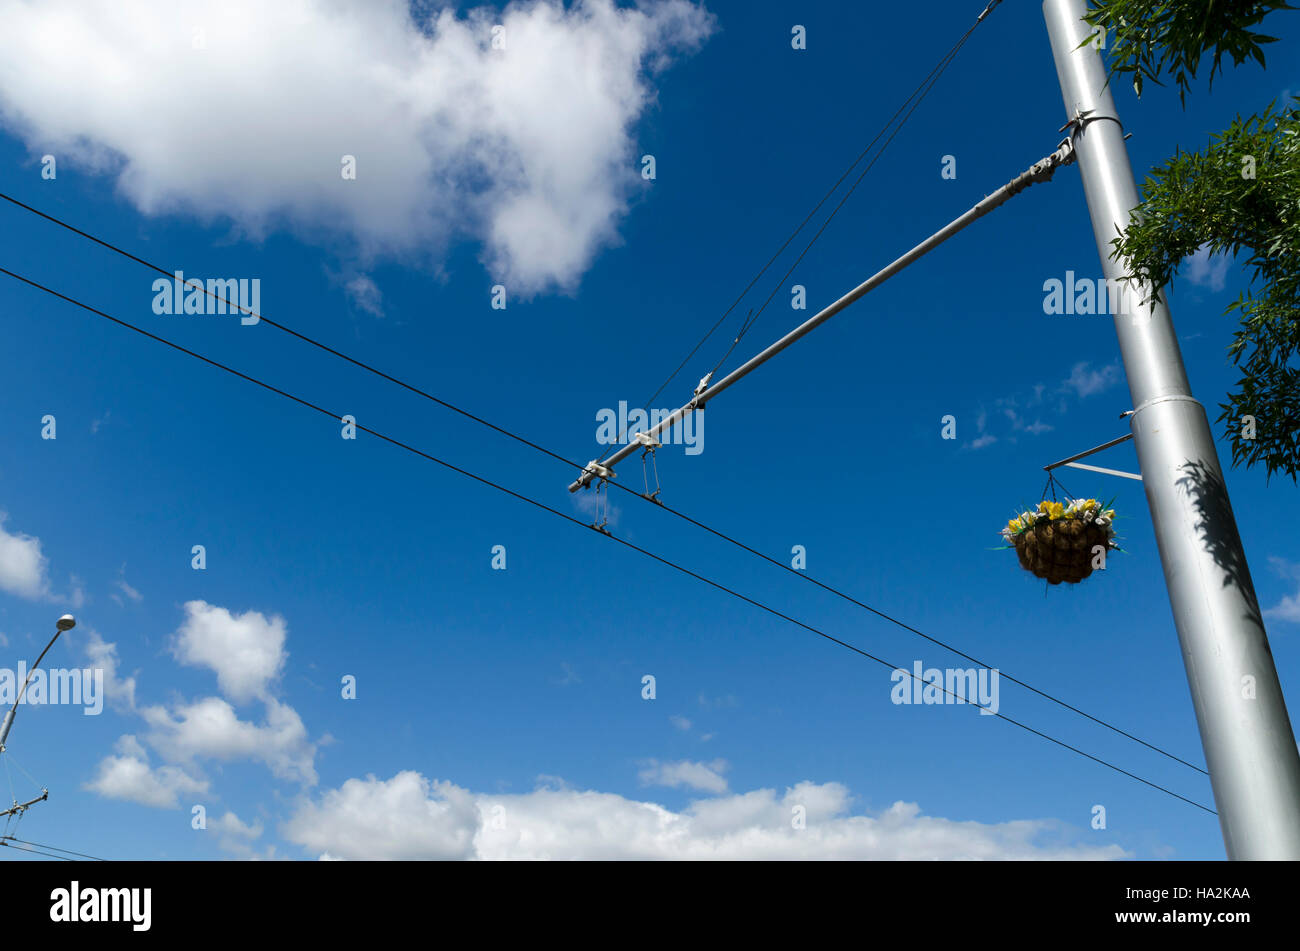 Basket with flowers decoration on a trolley wire pole Stock Photo ...